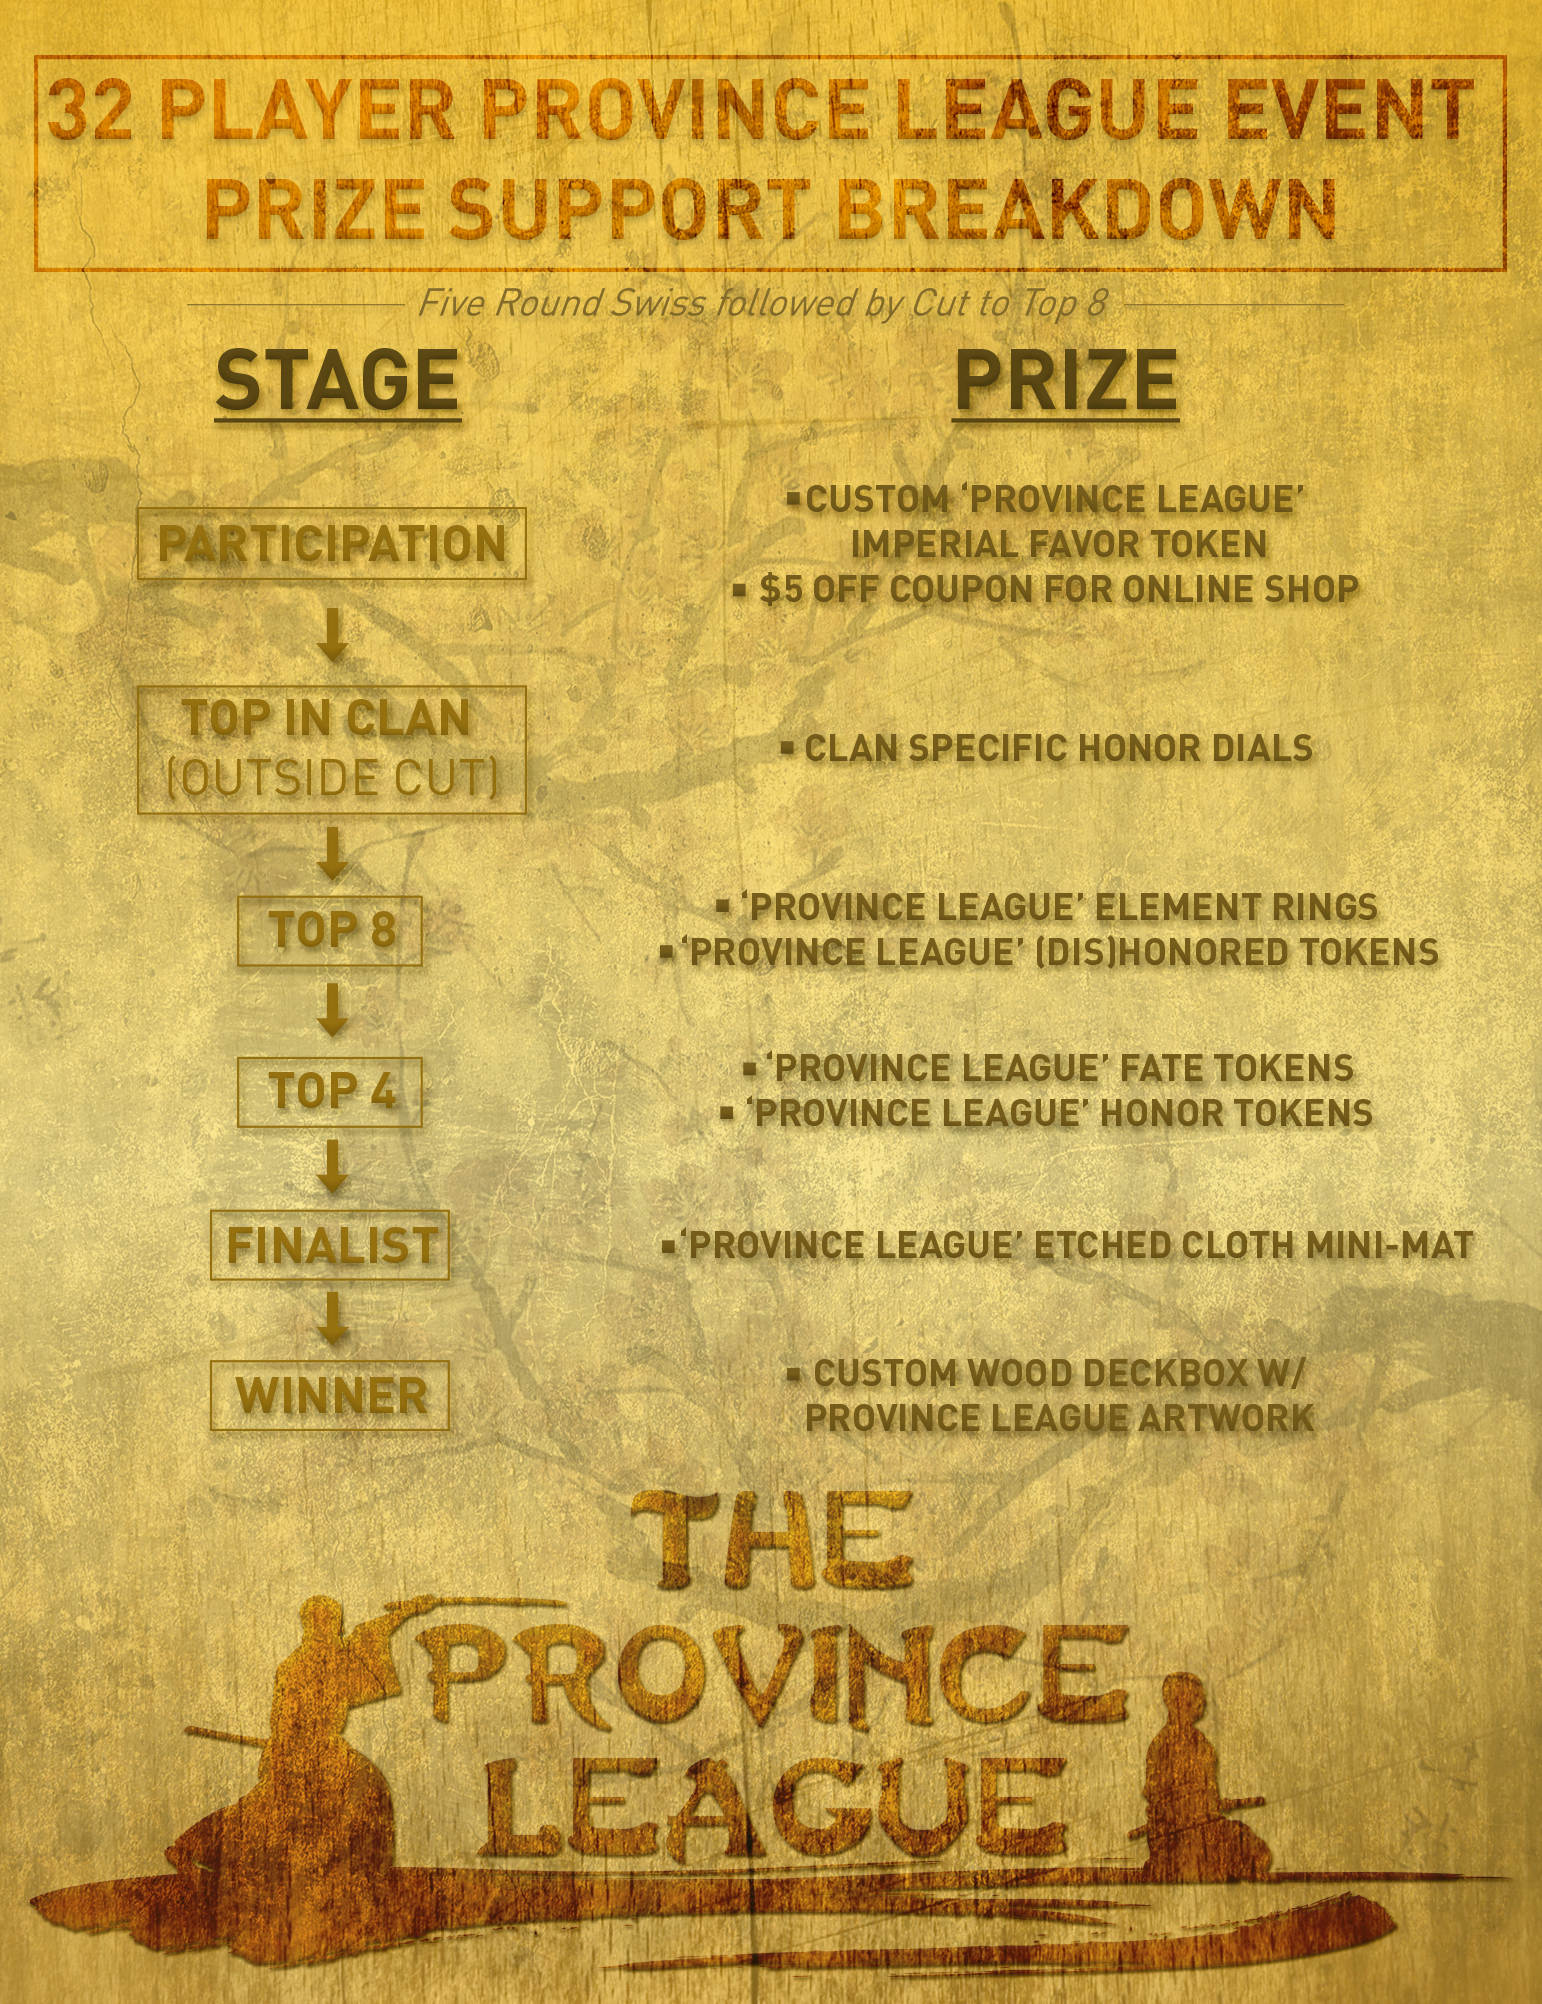 ProvinceLeague_32PlayerPrizes.jpg